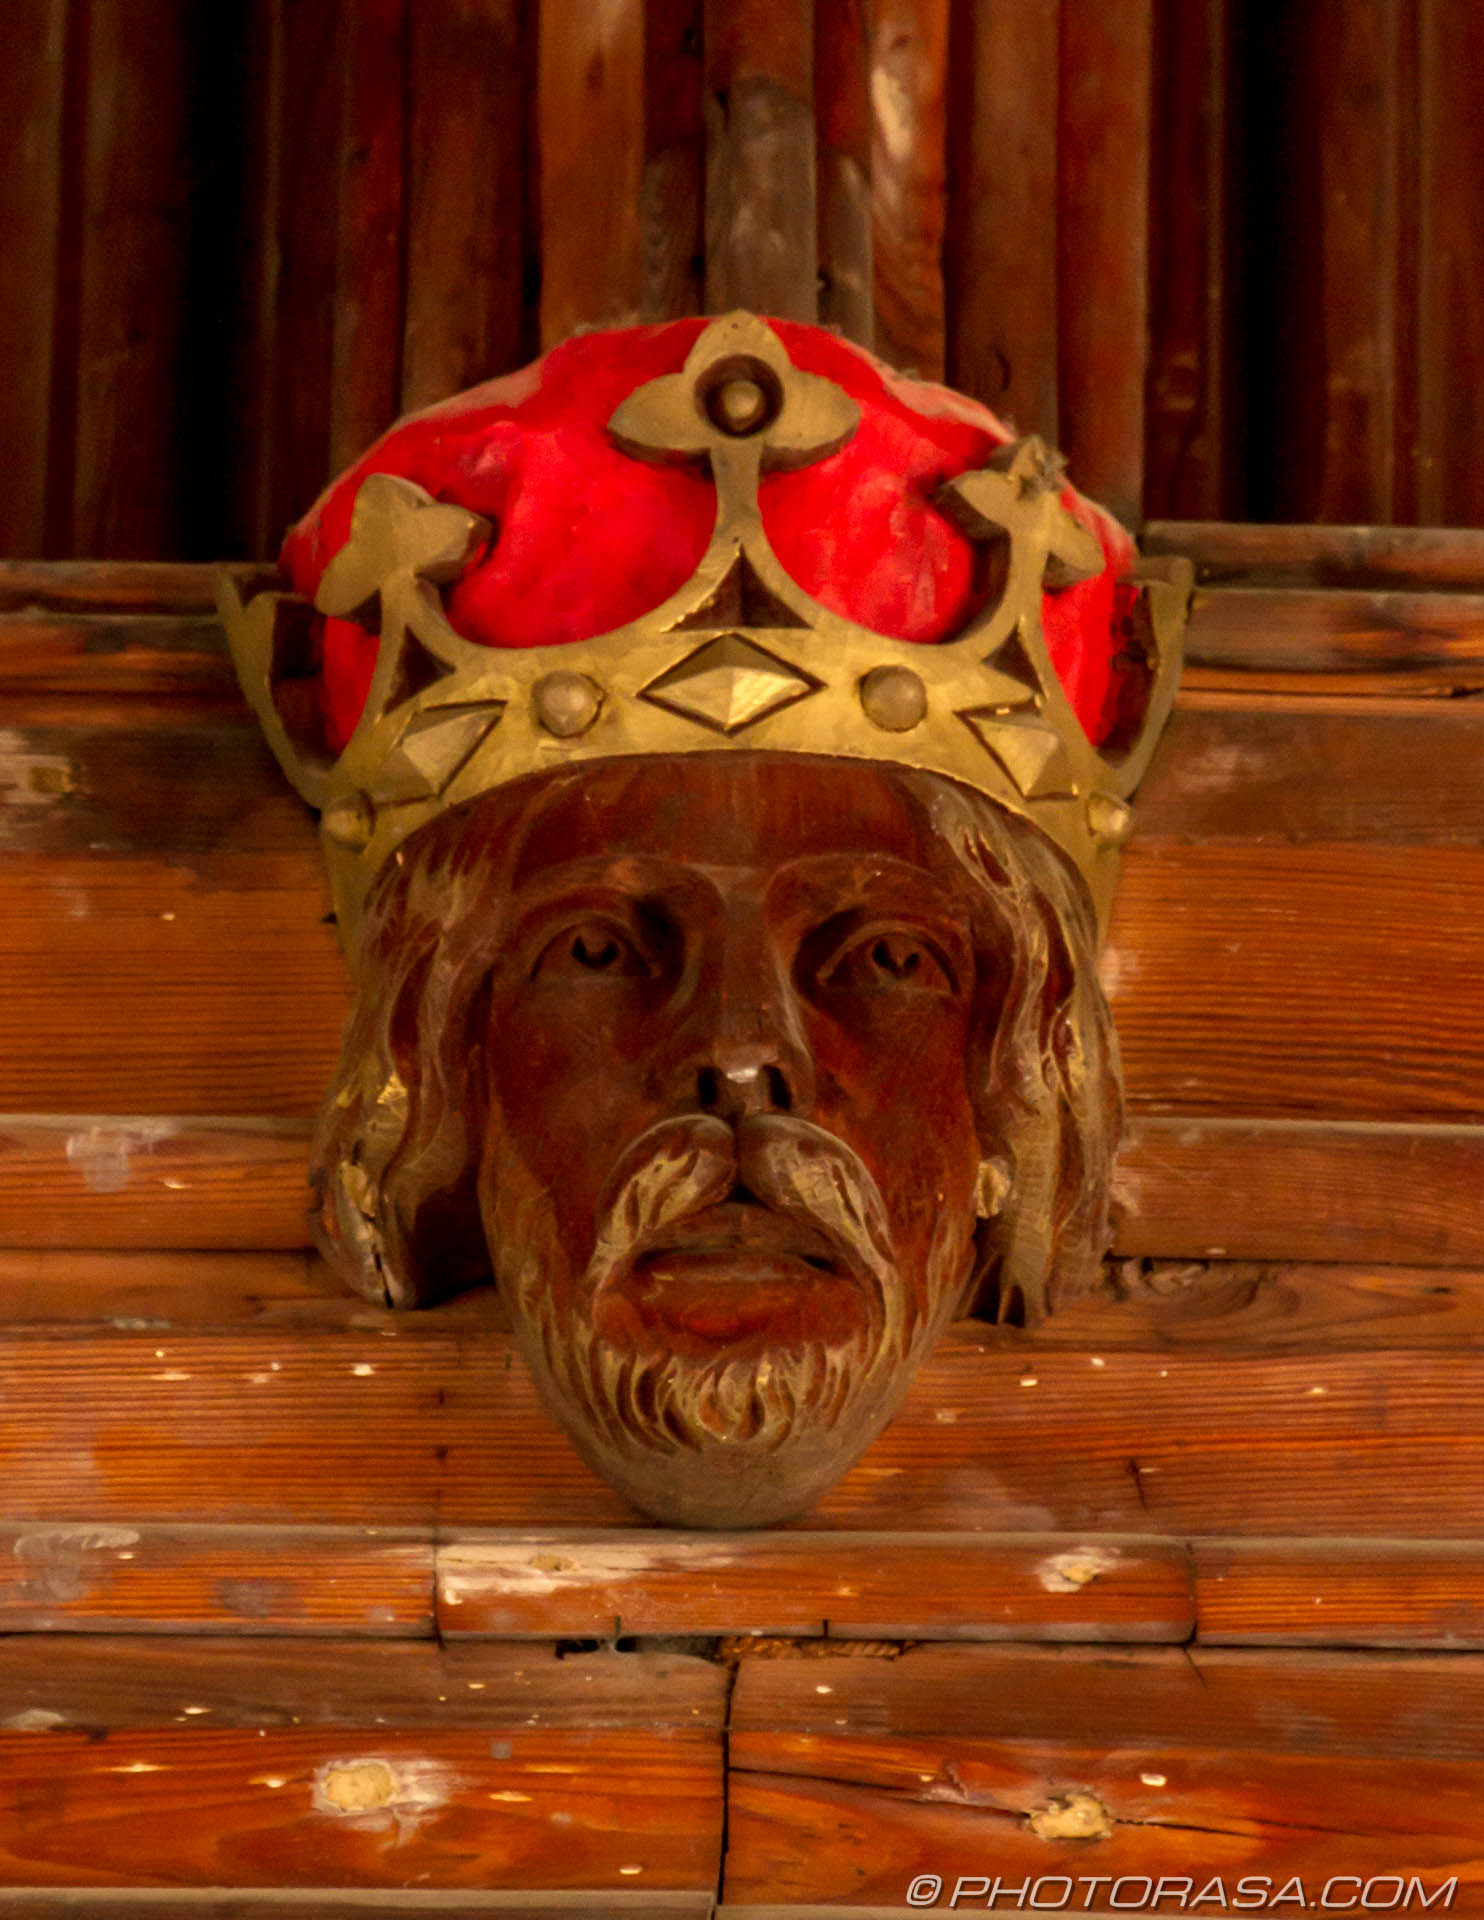 http://photorasa.com/st-dunstans-church-cranbrook/victorian-roof-carving-of-kings-head/